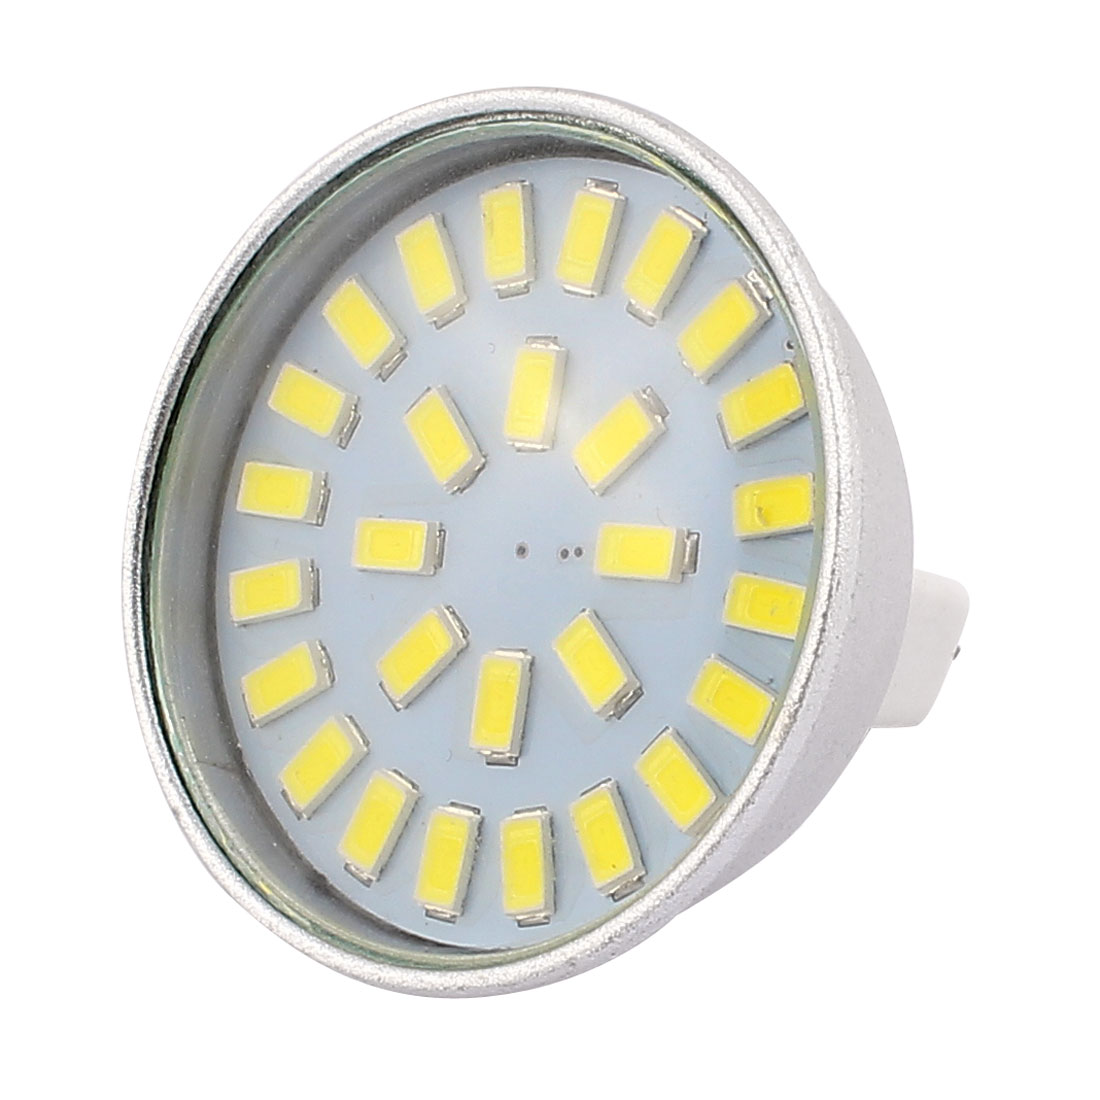 220V-240V 5W MR16 5730 SMD 28 LEDs LED Bulb Light Spotlight Lamp Energy Saving White